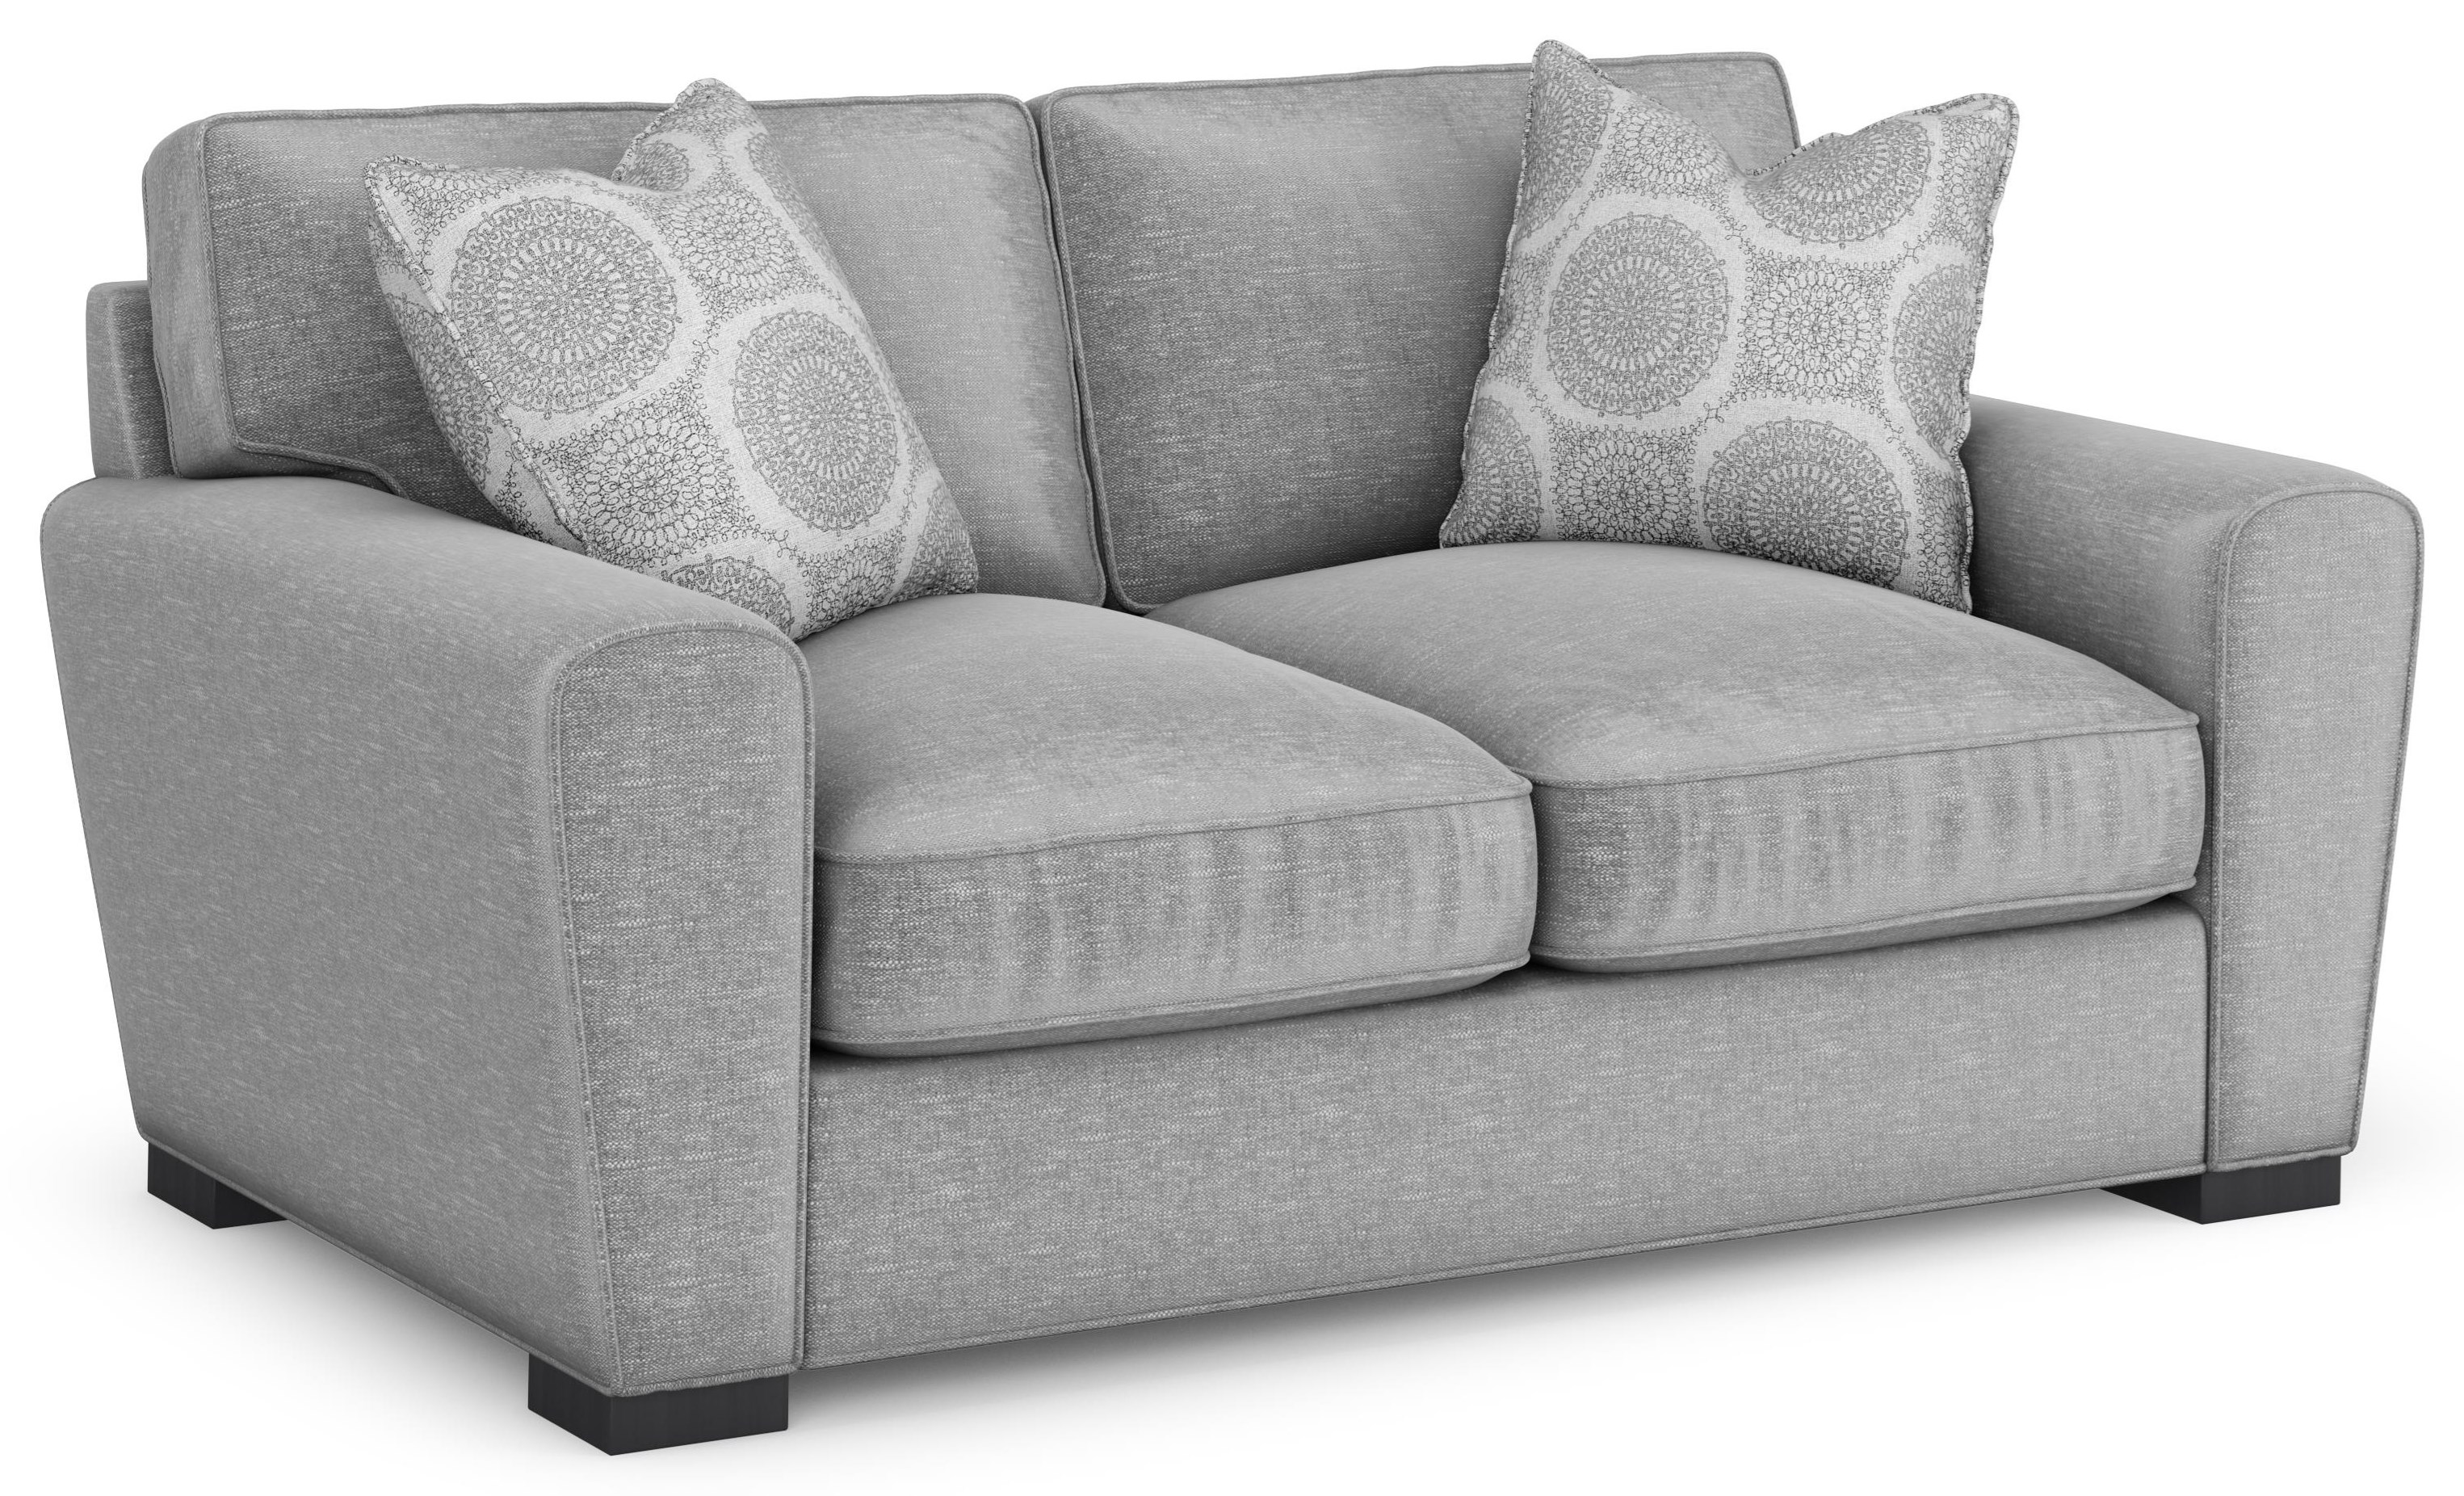 282 Monroe Loveseat by Sunset Home at Walker's Furniture